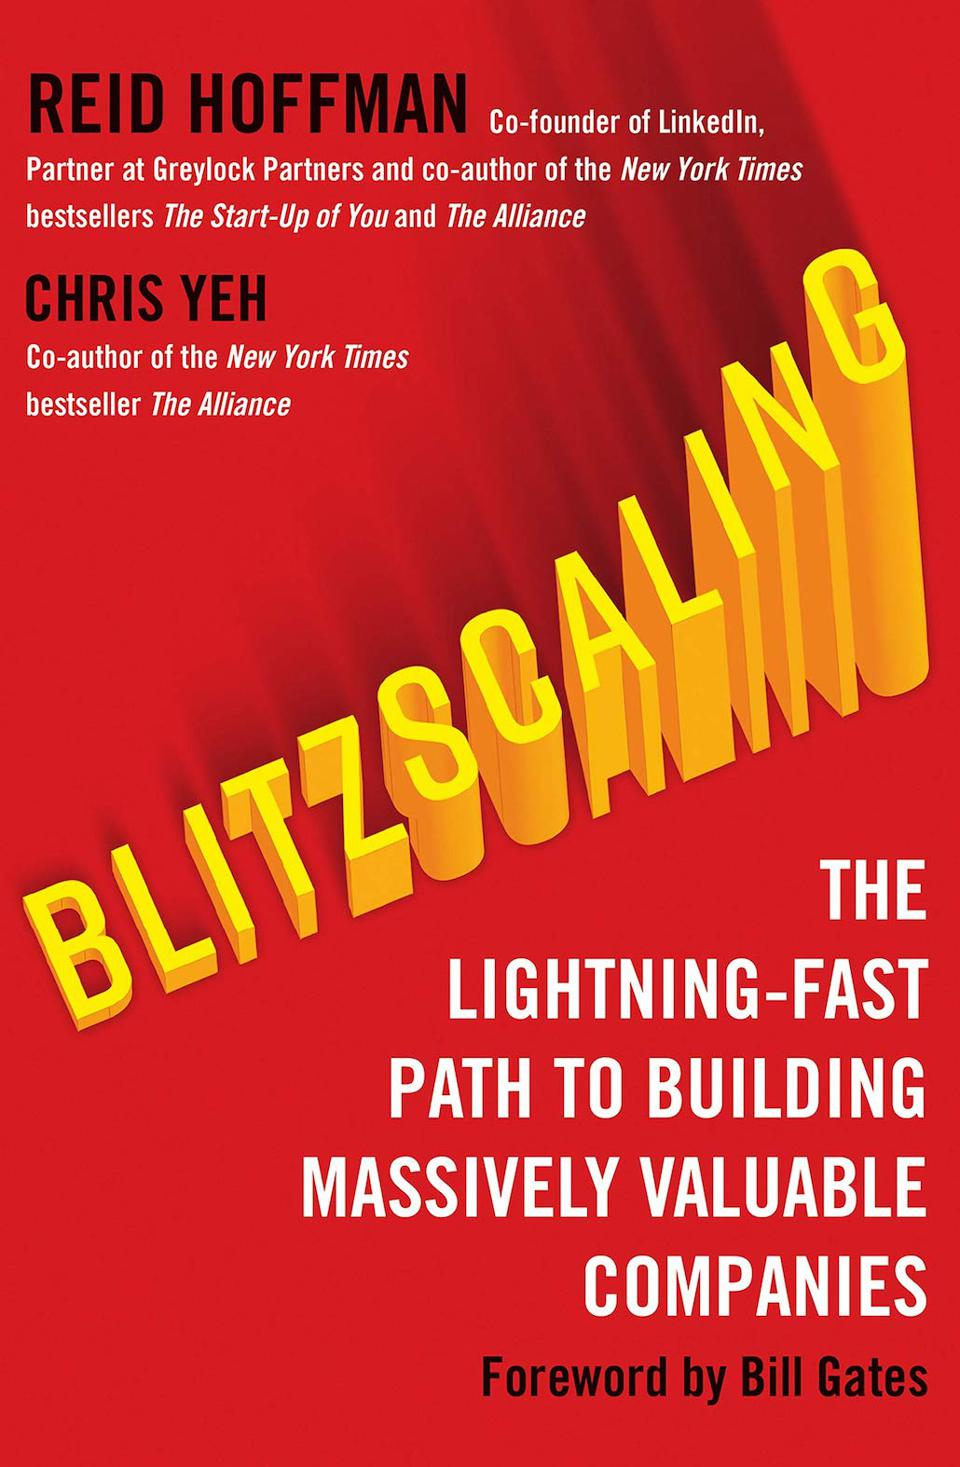 Blitzscaling: The Lightning-Fast Path to Building Massively Valuable Companies by Reid Hoffman and Chris Yeh